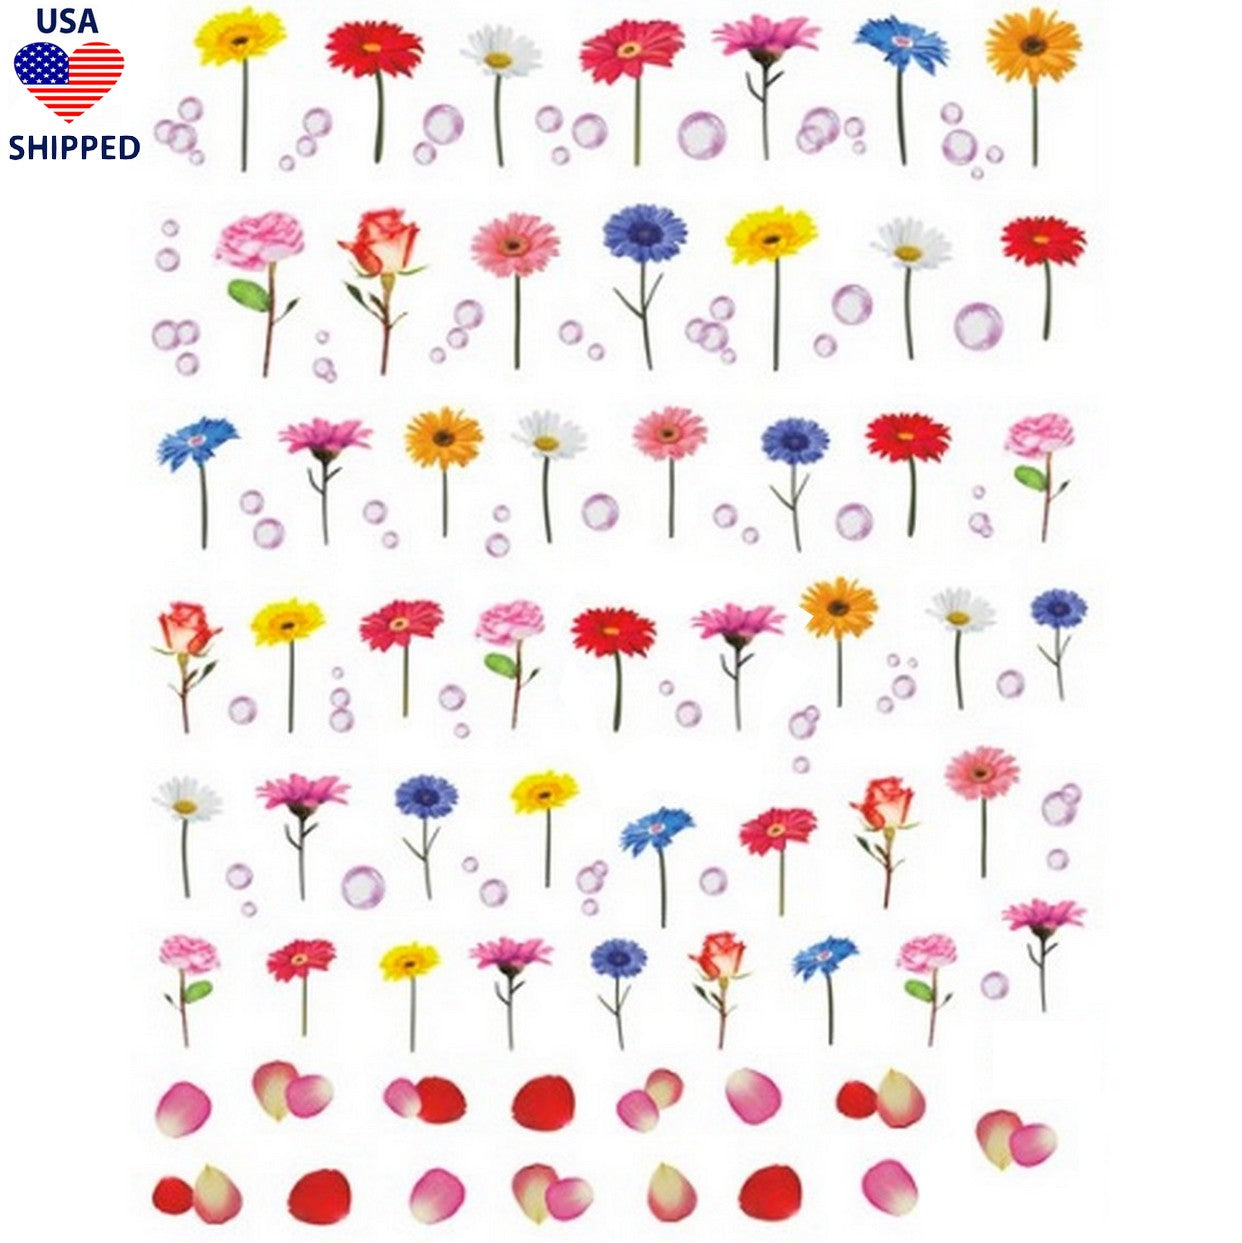 (USA) Floral Single Stem Flowers Nail Stickers